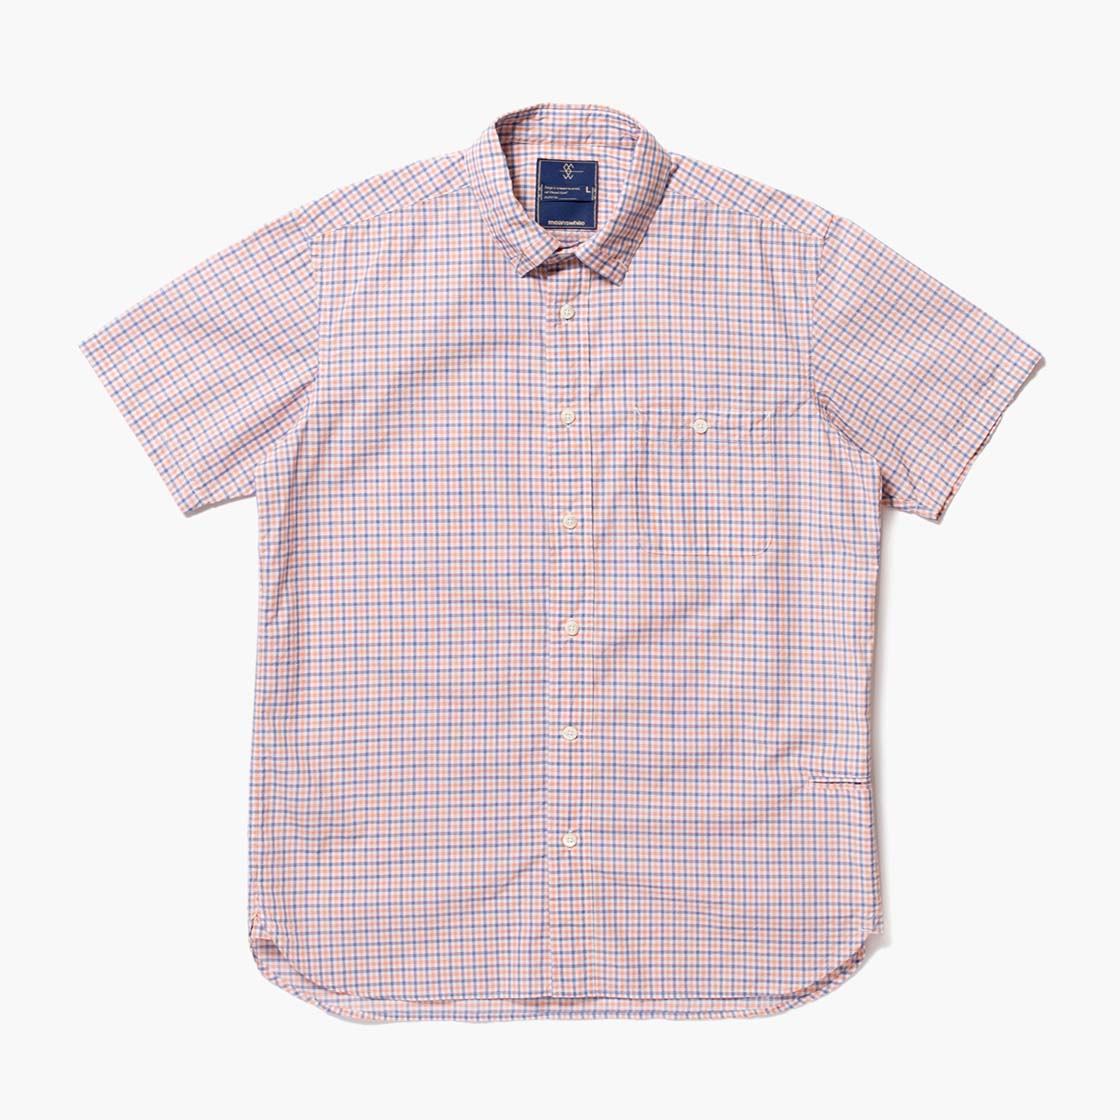 Cotton Gingham Check Loop Down S.S SH